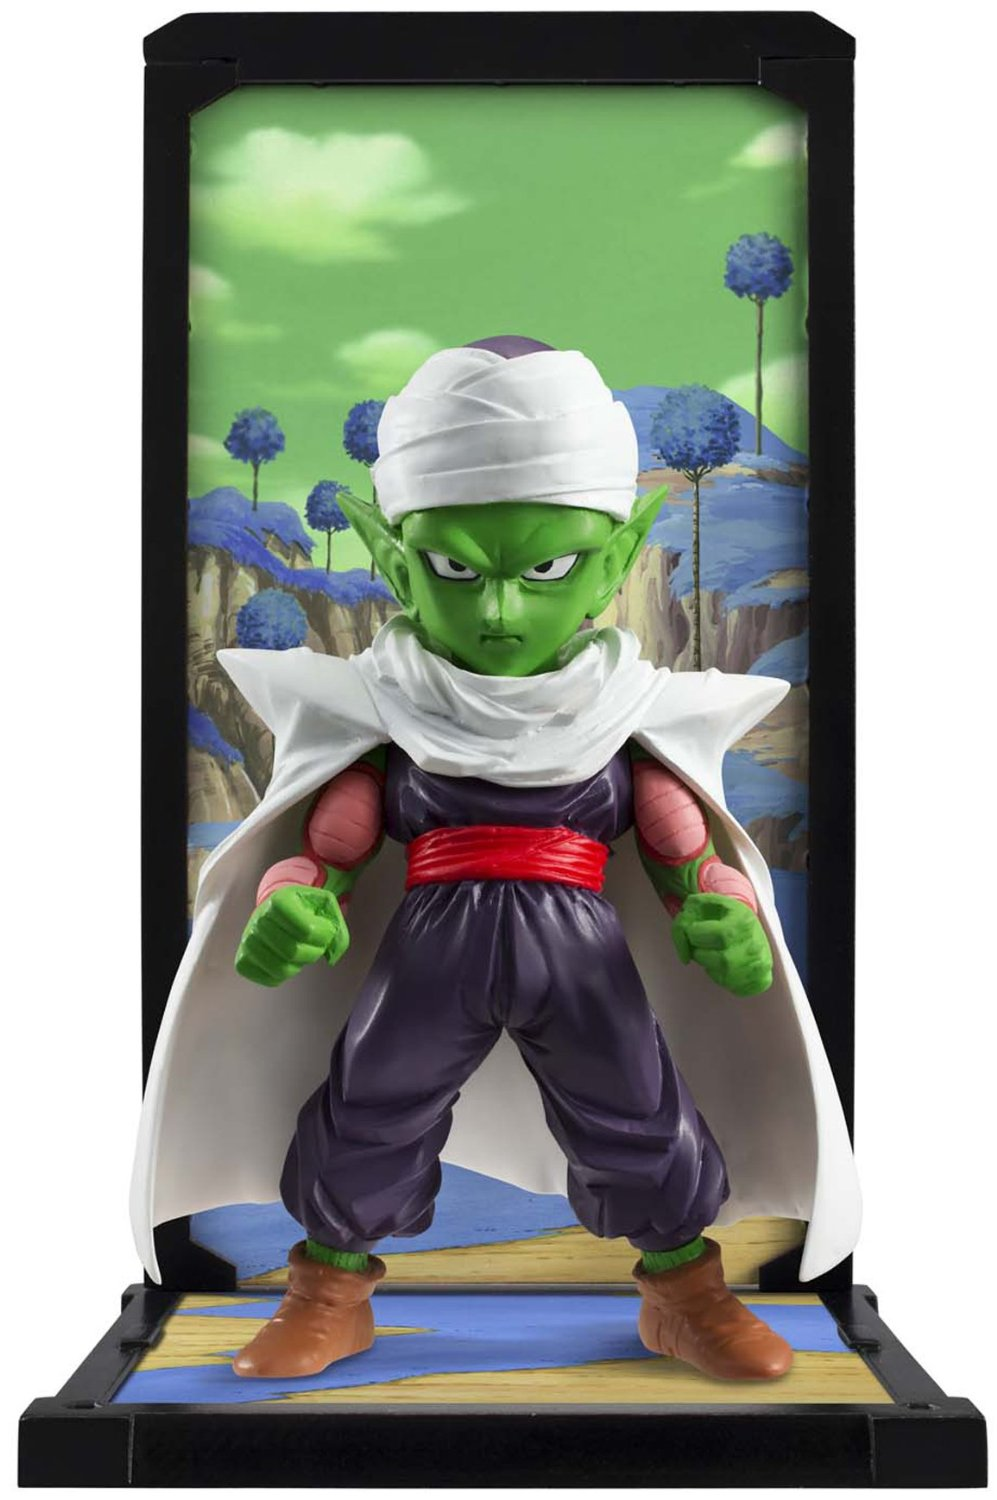 Tamashii Buddies Piccolo Dragon Ball